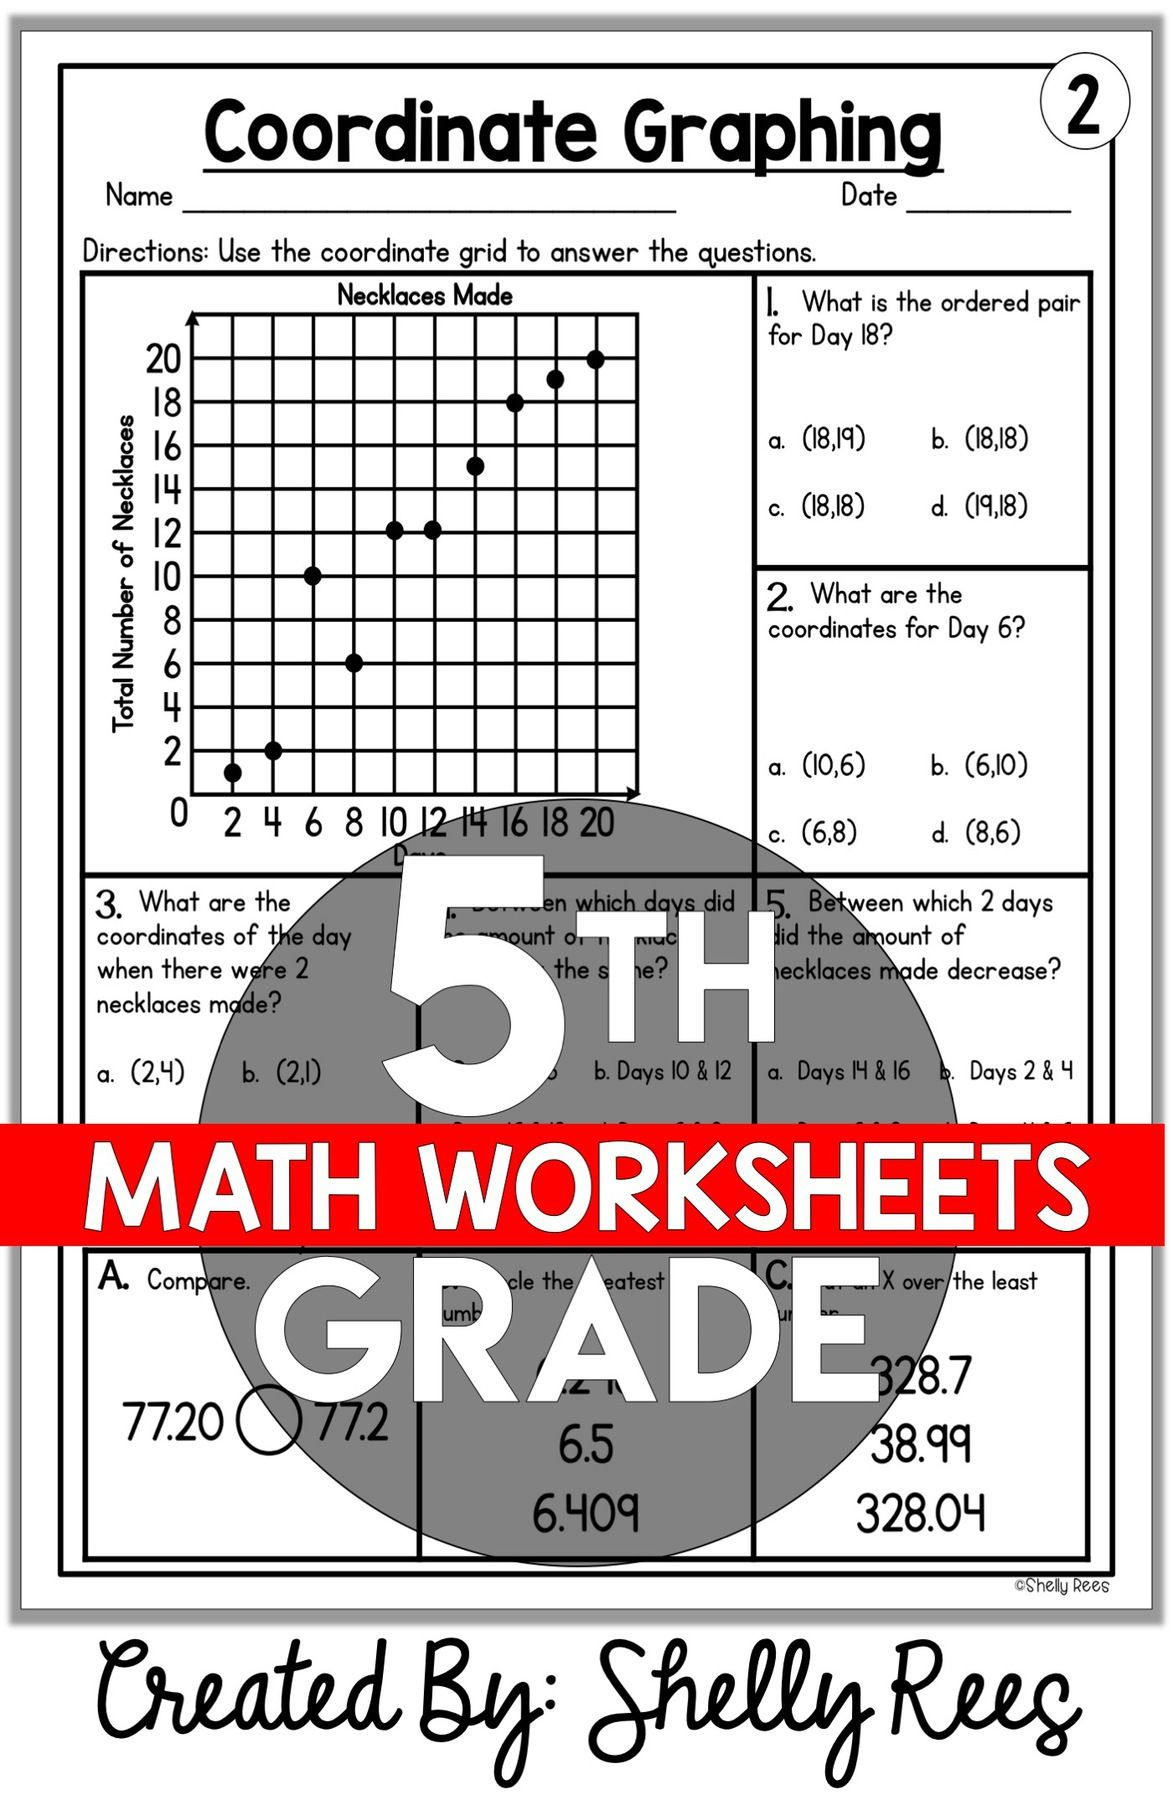 5th Grade Math Worksheets Free And Printable Appletastic Learning 5th Grade Math Grade 5 Math Worksheets Math Review Worksheets